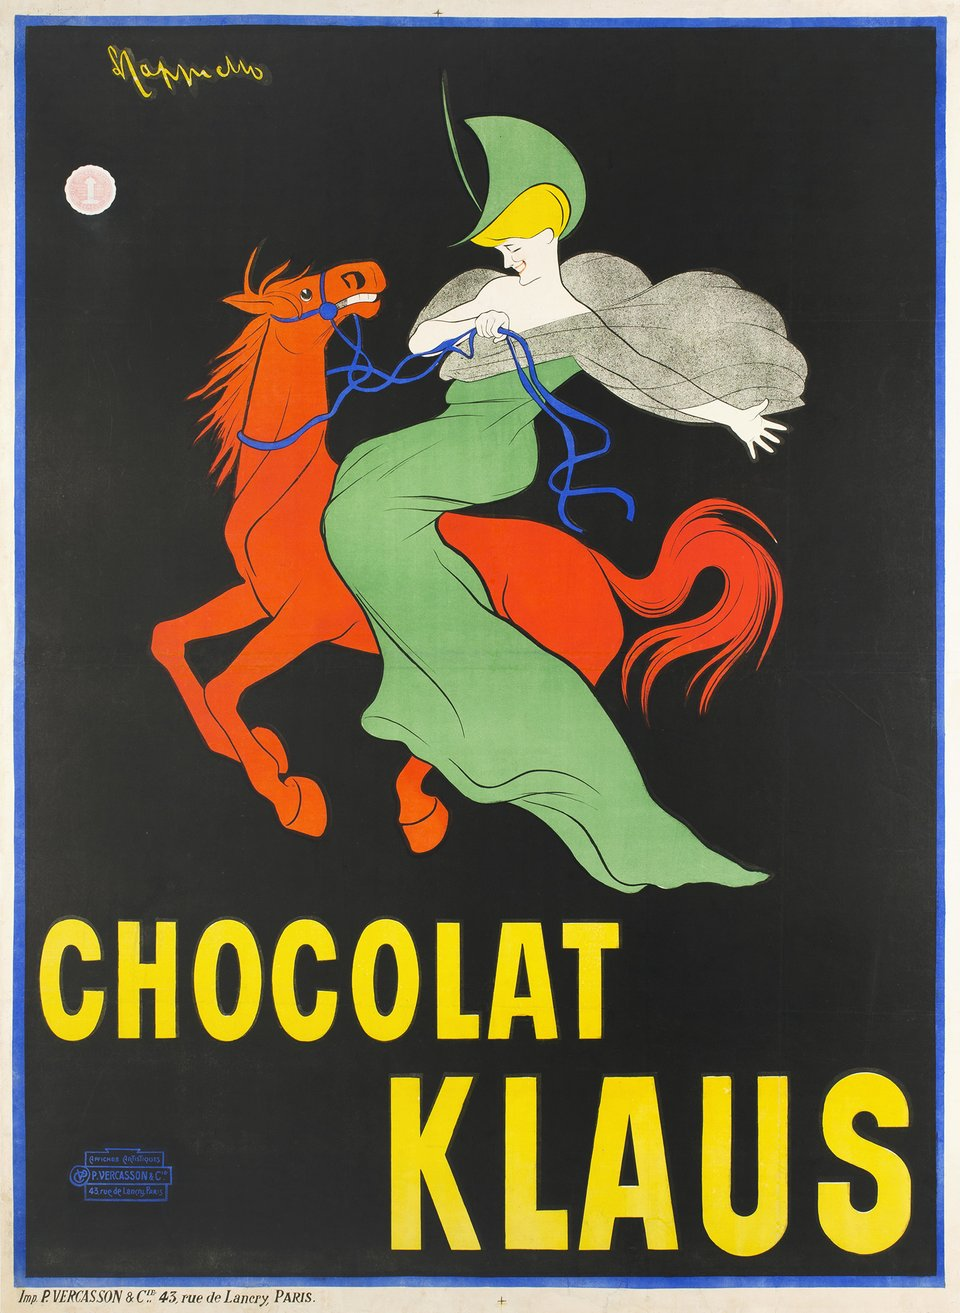 Chocolat Klaus – Affiche ancienne – Leonetto CAPPIELLO – 1903